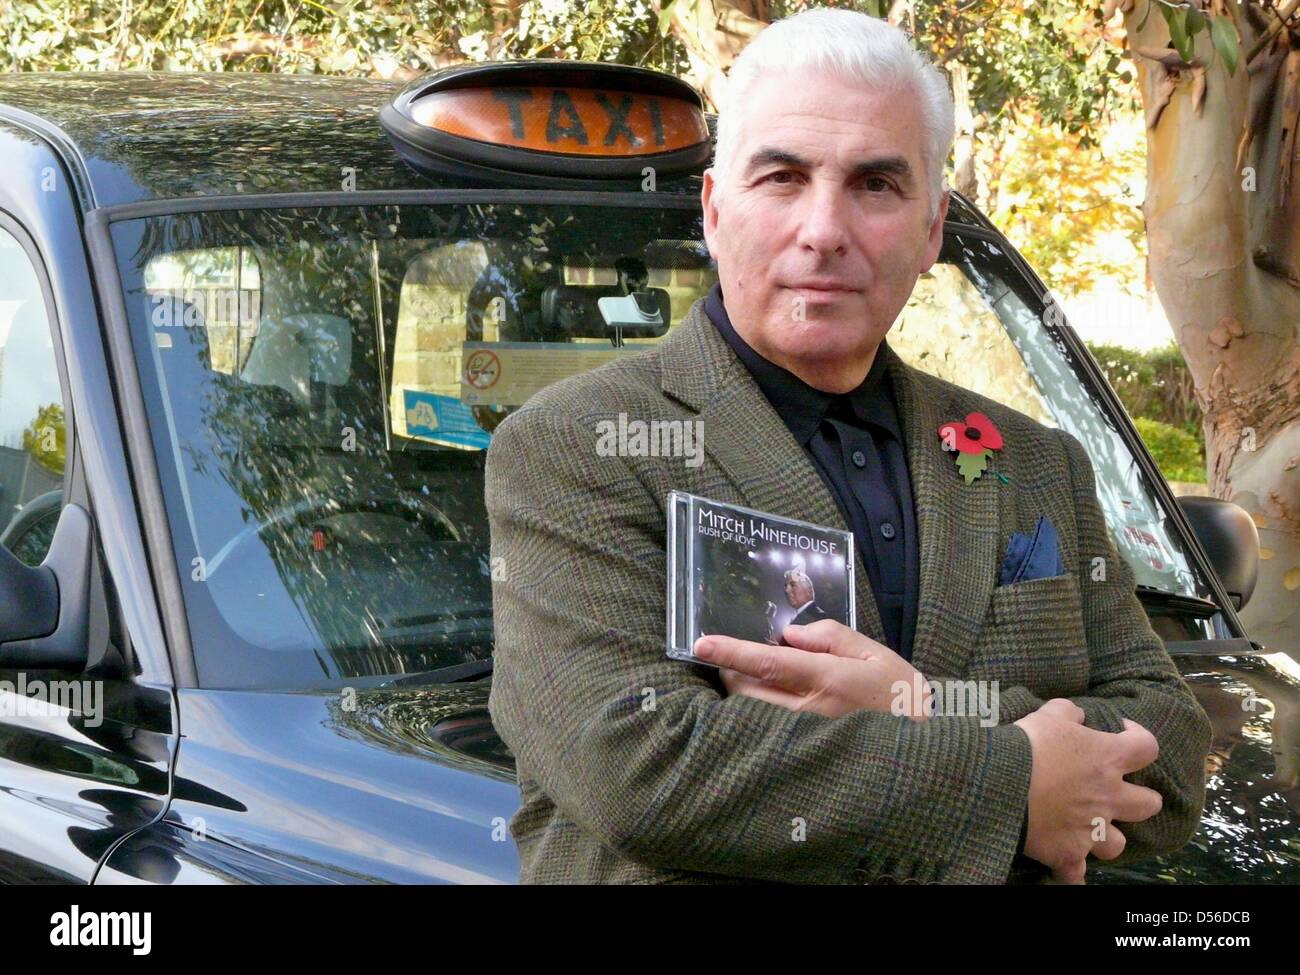 Mitch Winehouse poses in front of a cab in London with his first album, Great Britain, 04 November 2010. The father Stock Photo